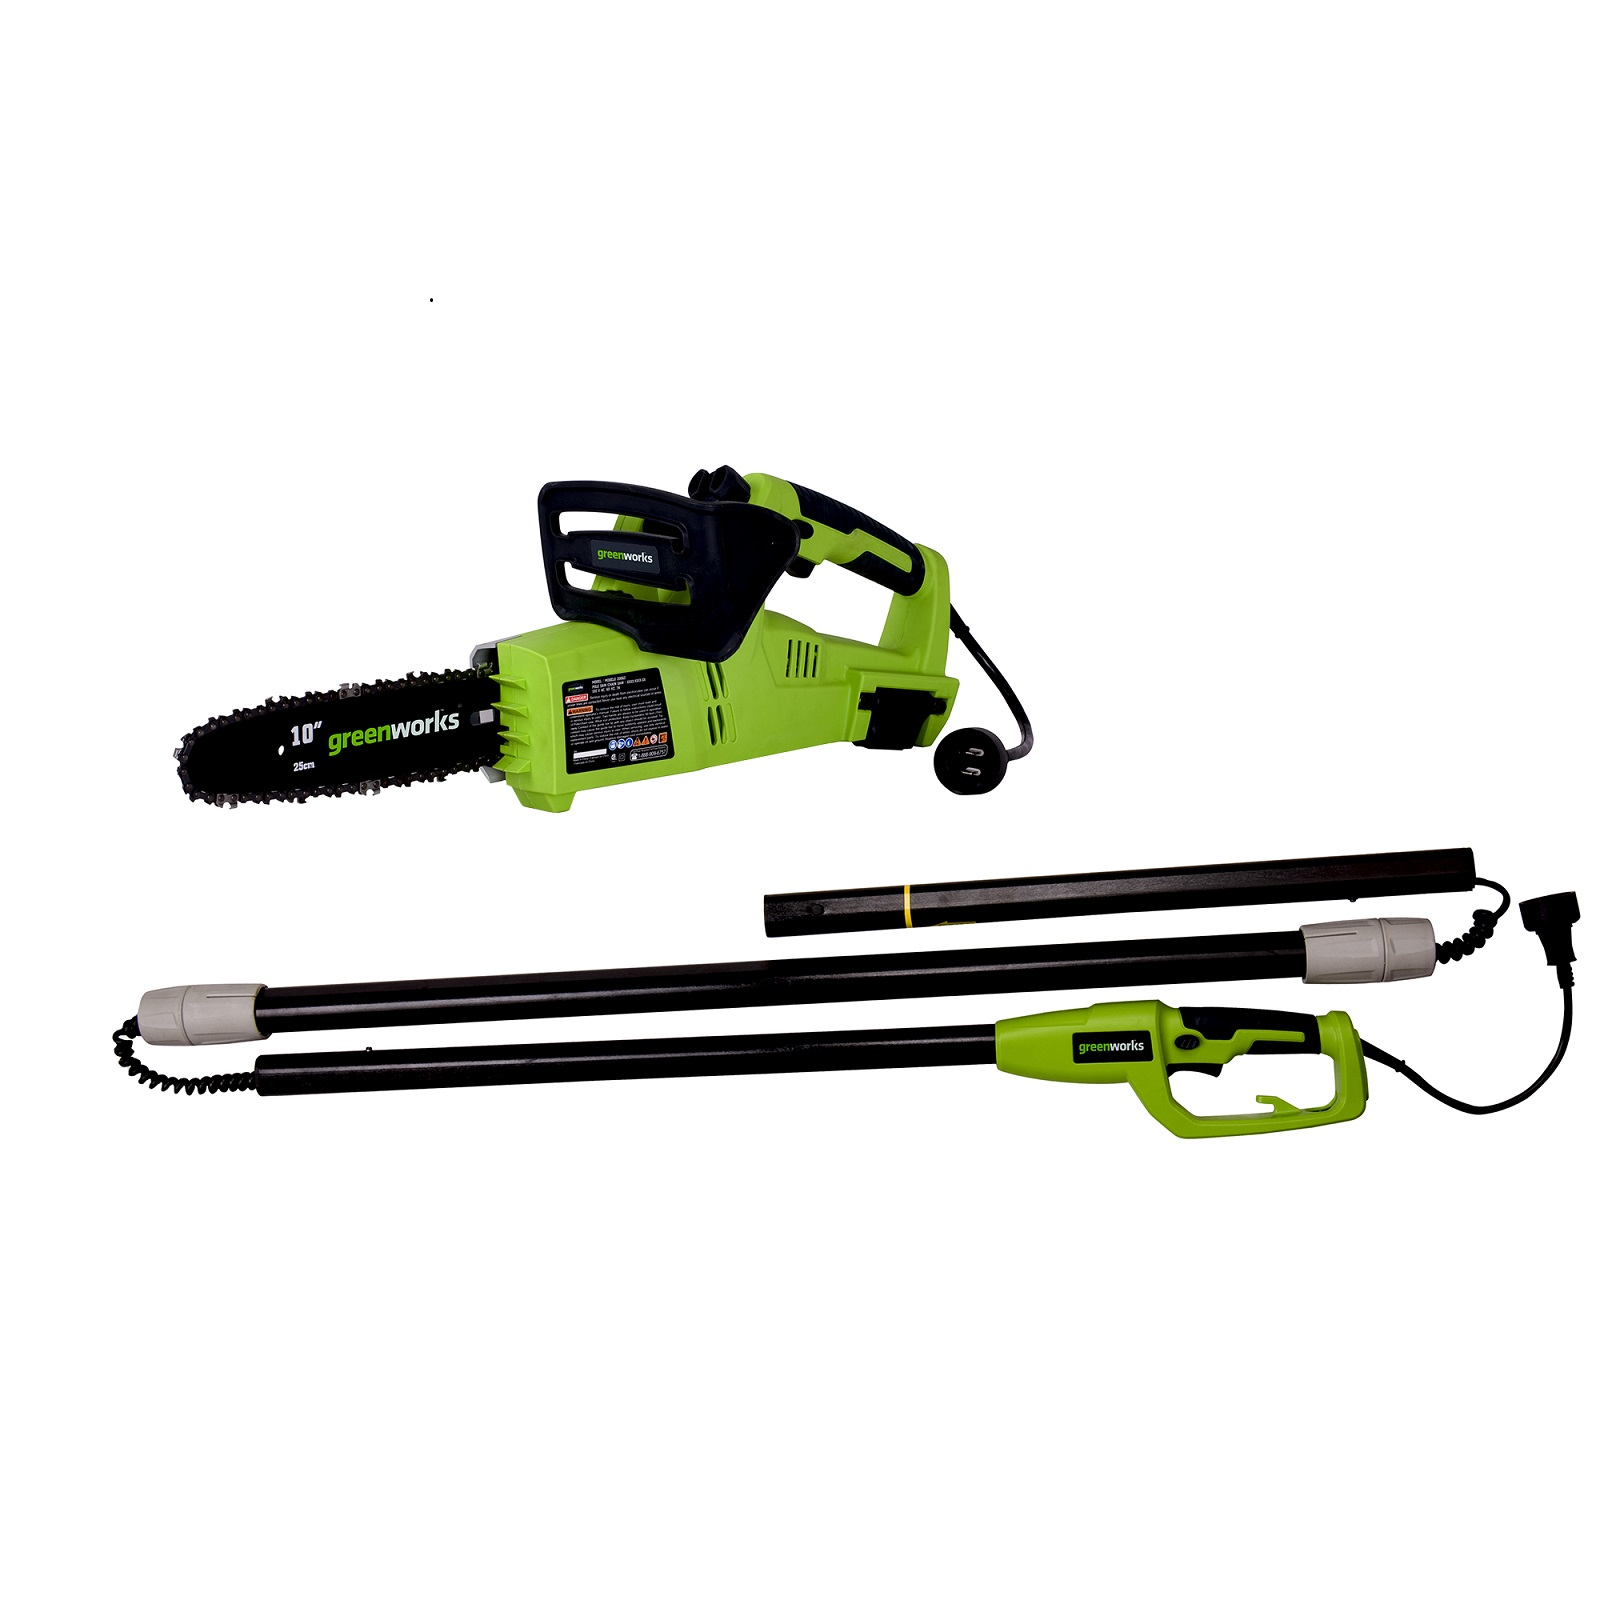 Greenworks 10-Inch 6 Amp Corded Chainsaw & Pole Saw Combo PSCS06B00 by Sunrise Global Marketing, LLC